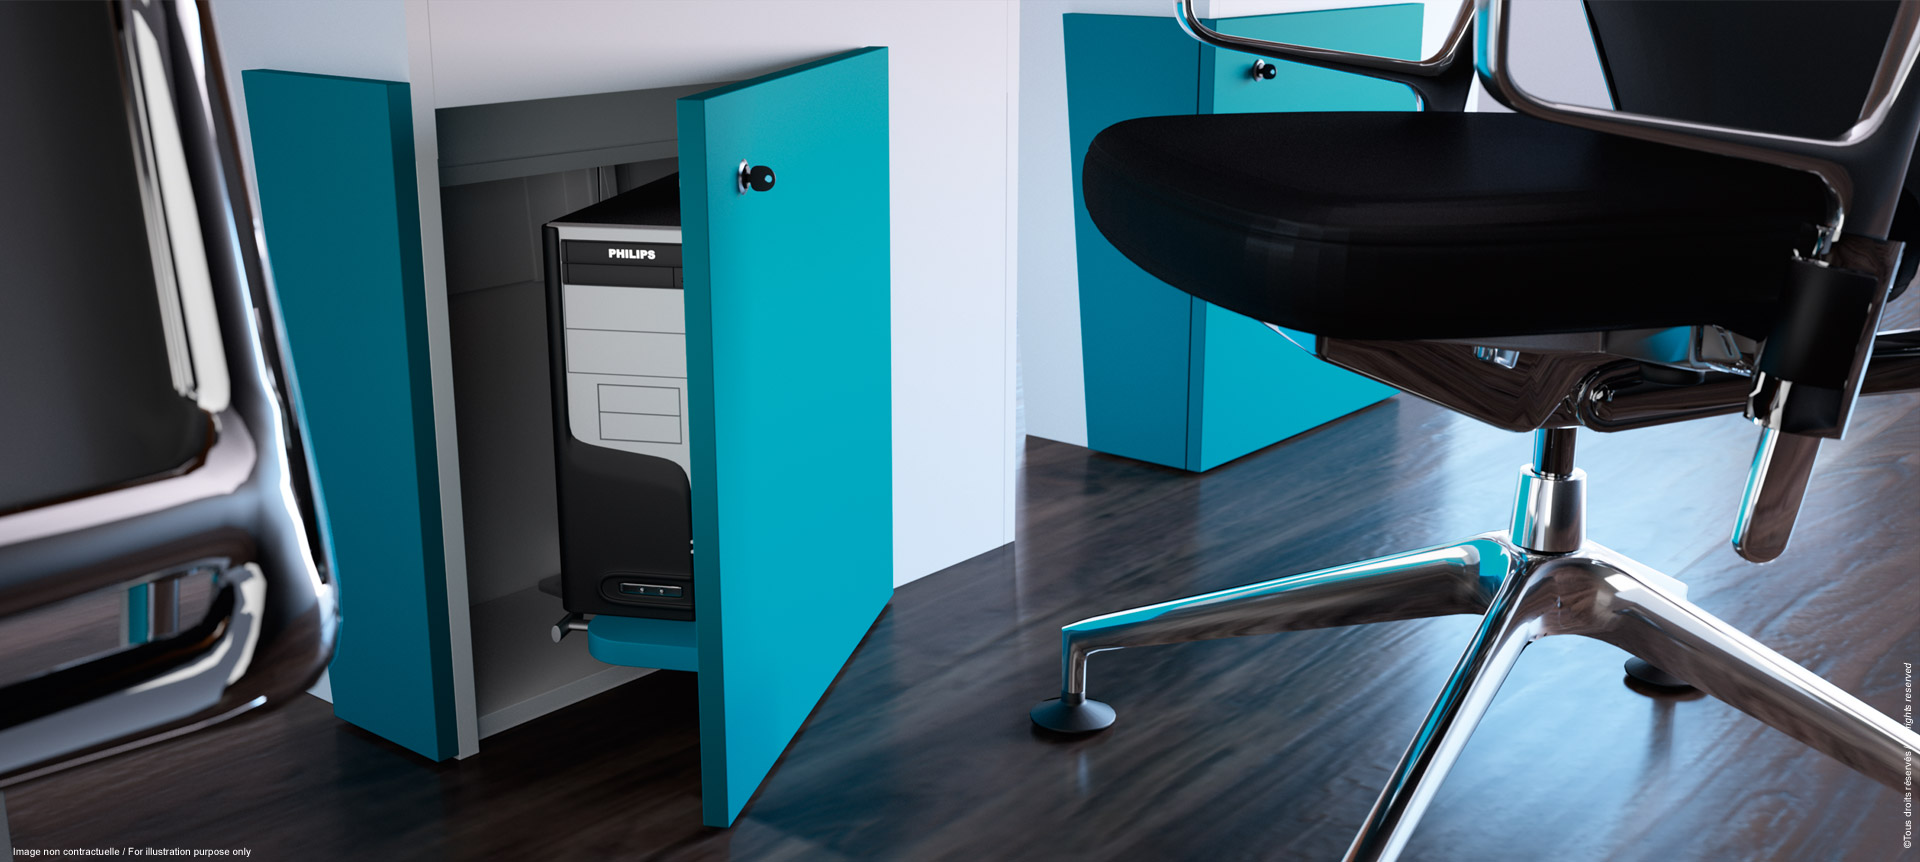 I-Rise - Storage under the all-purpose meeting table